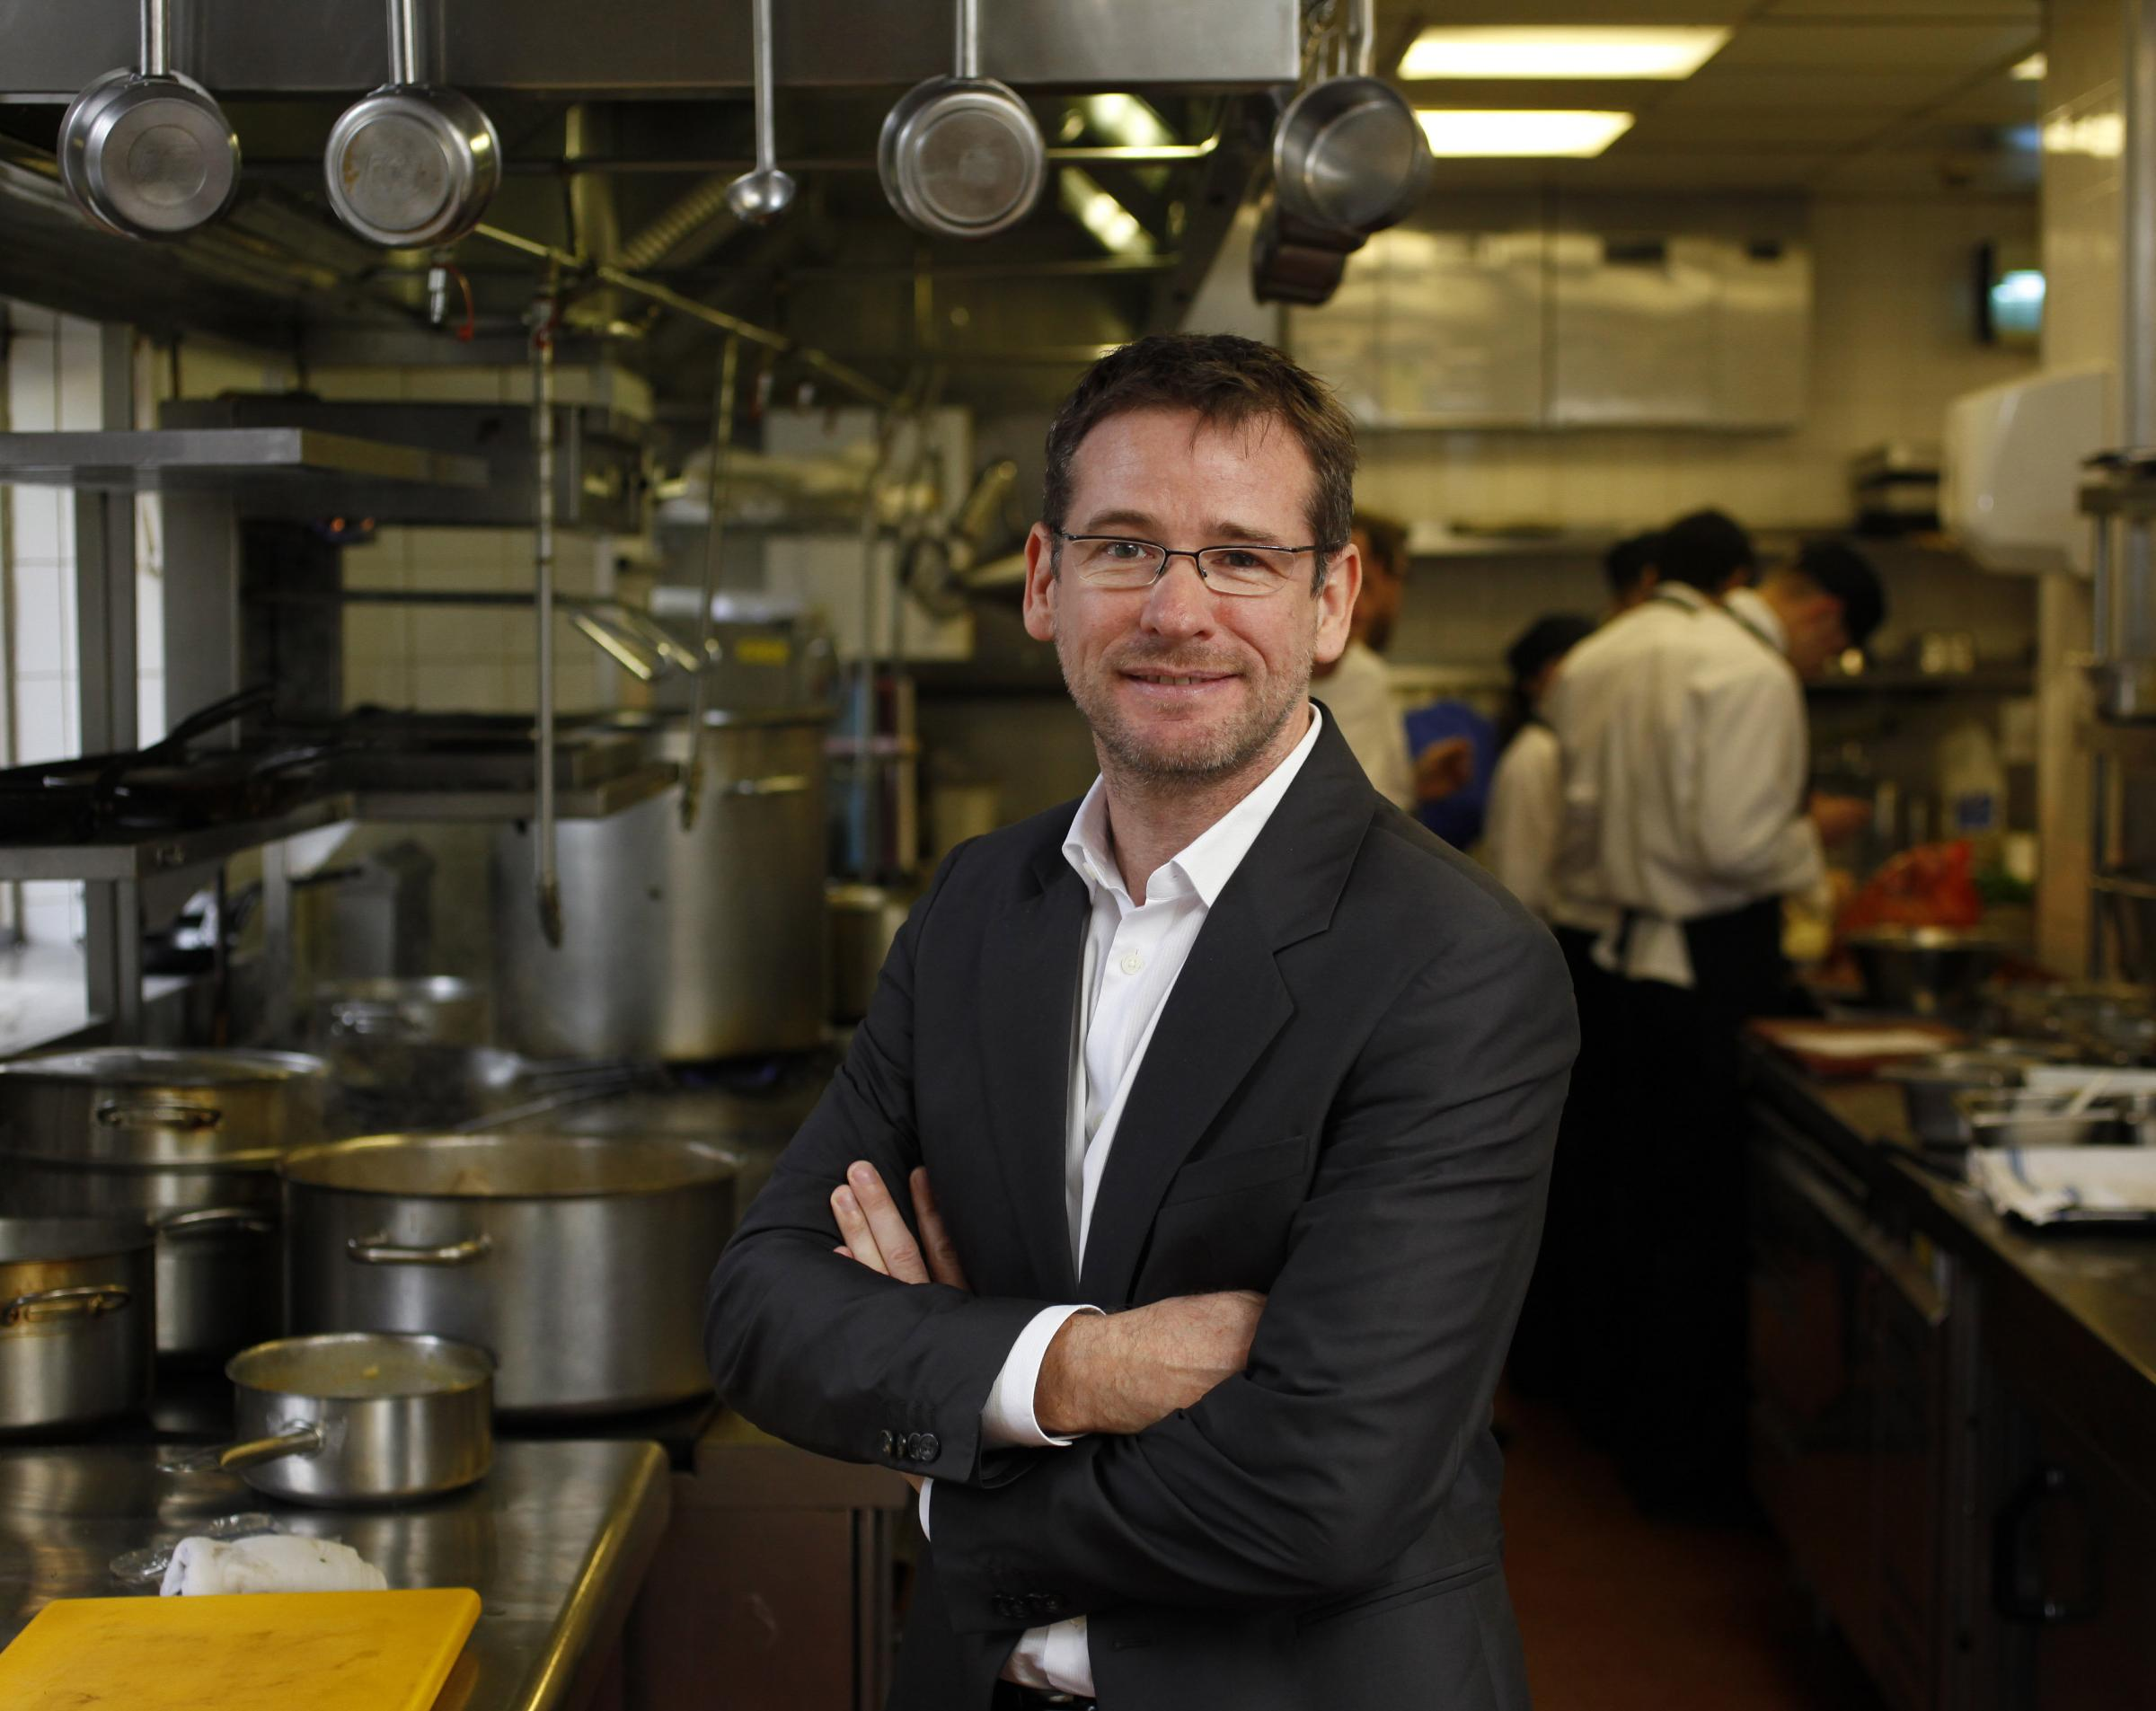 Andrew Fairlie's restaurant at Gleneagles has retained its two-star gong. Picture: Colin Mearns.